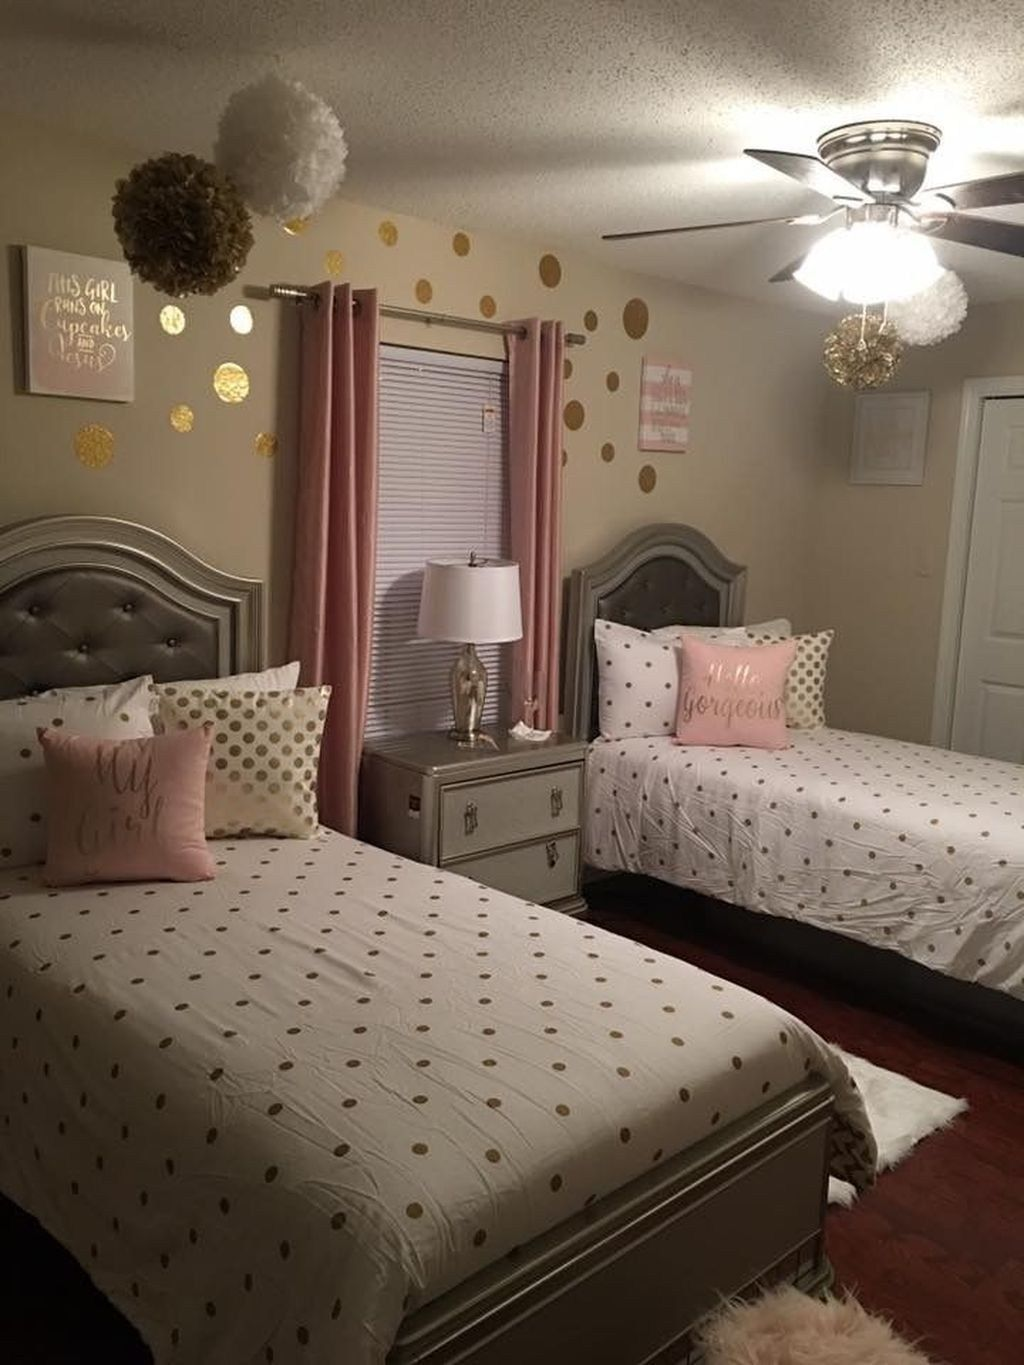 27 Girls Room Decor Ideas To Change The Feel Of The Room Enthusiasthome Shared Girls Bedroom Twin Girl Bedrooms Small Room Bedroom